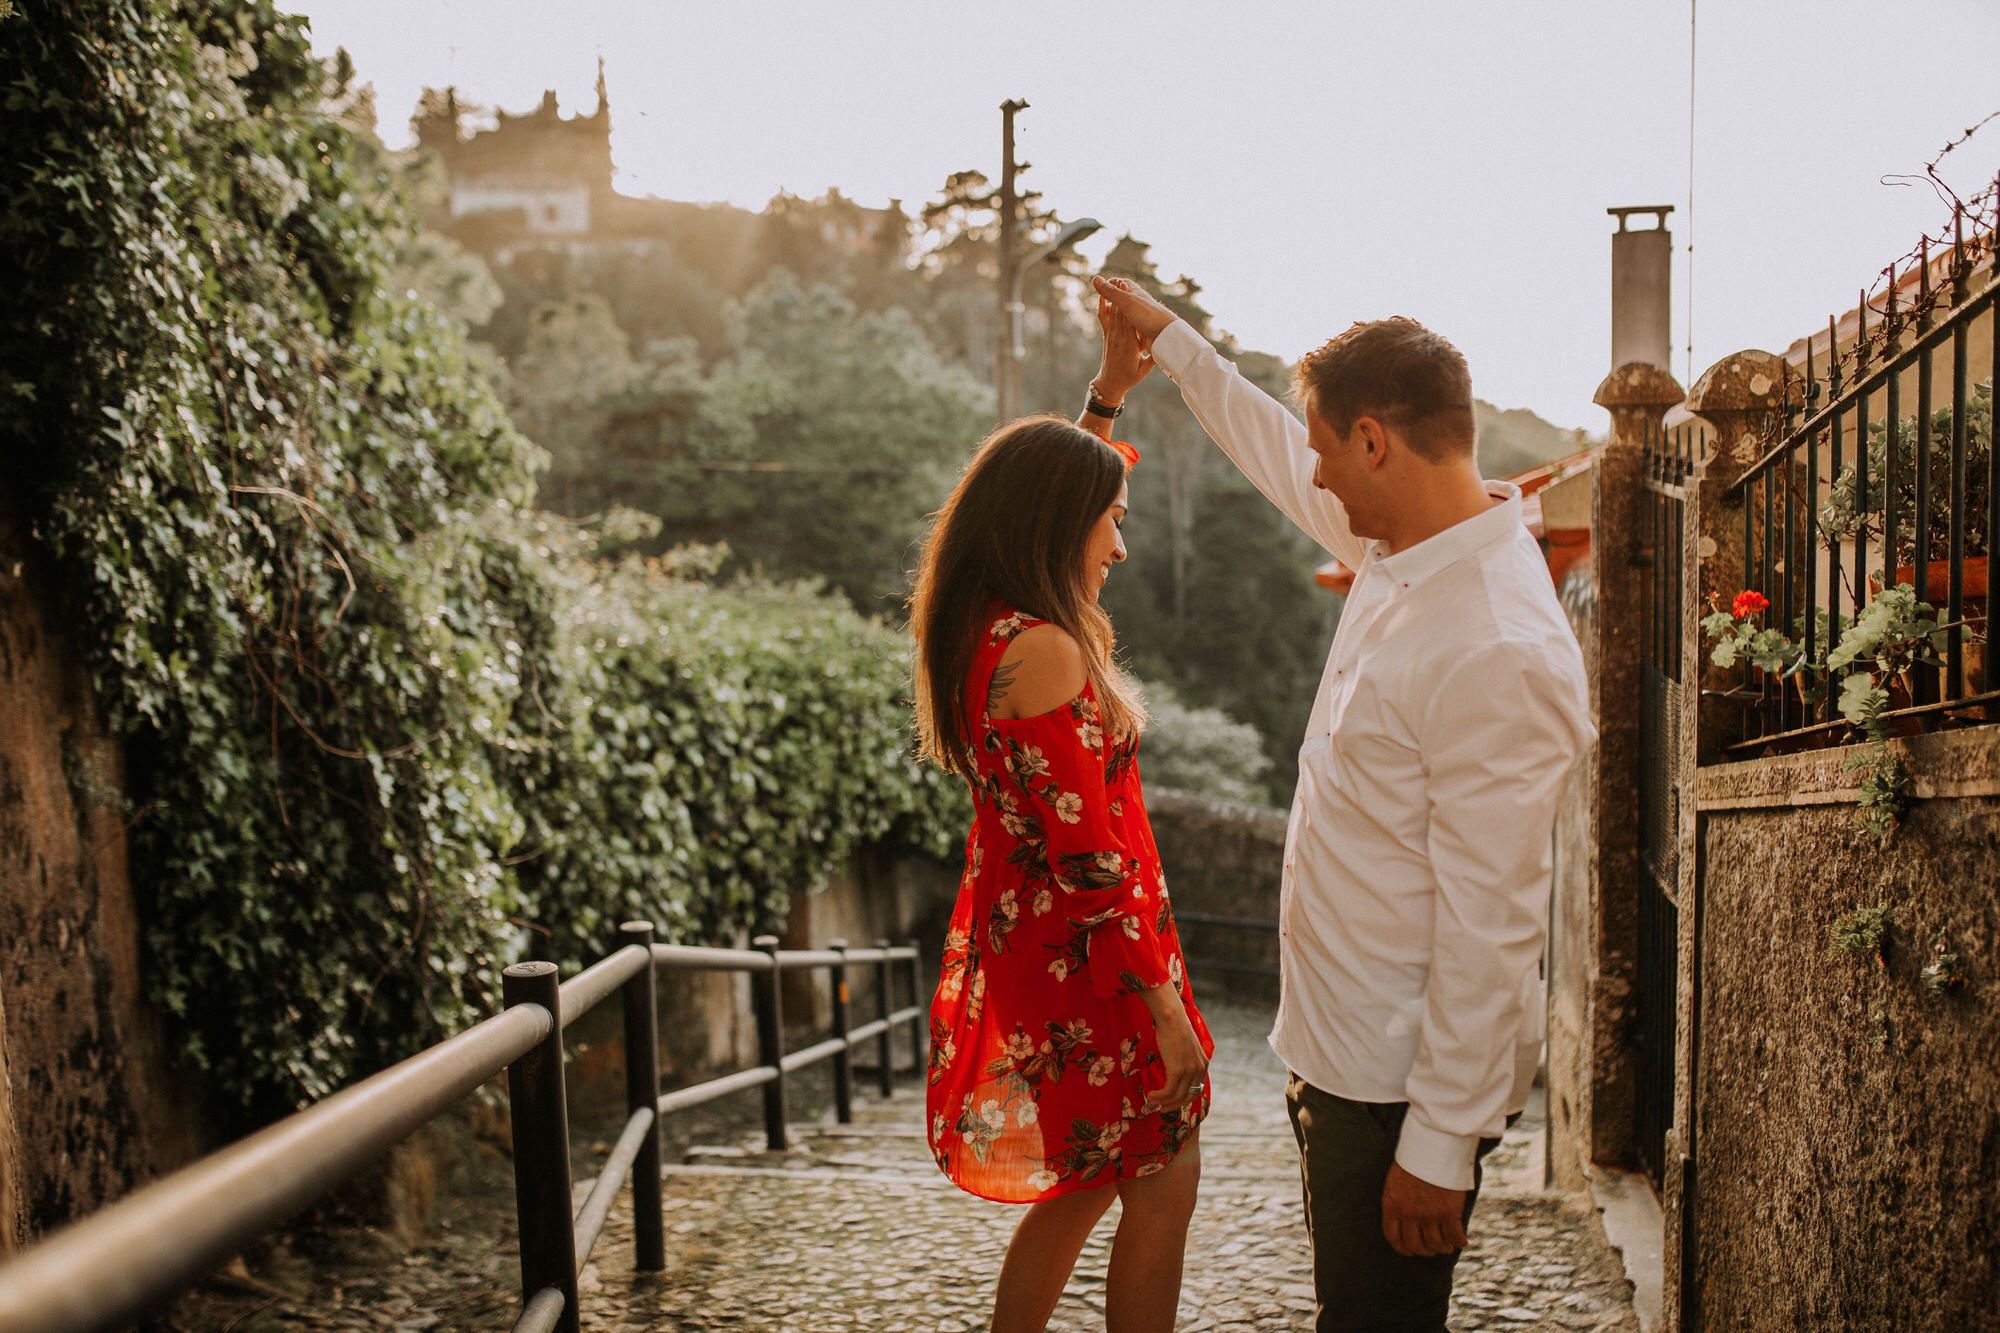 24-sessao-noivado-engagement-love-session-Sintra-lisboa-town-wedding-photography-photographer-natural-best-venue-planner-destination-filipe-santiago-fotografia-lifestyle-documentary